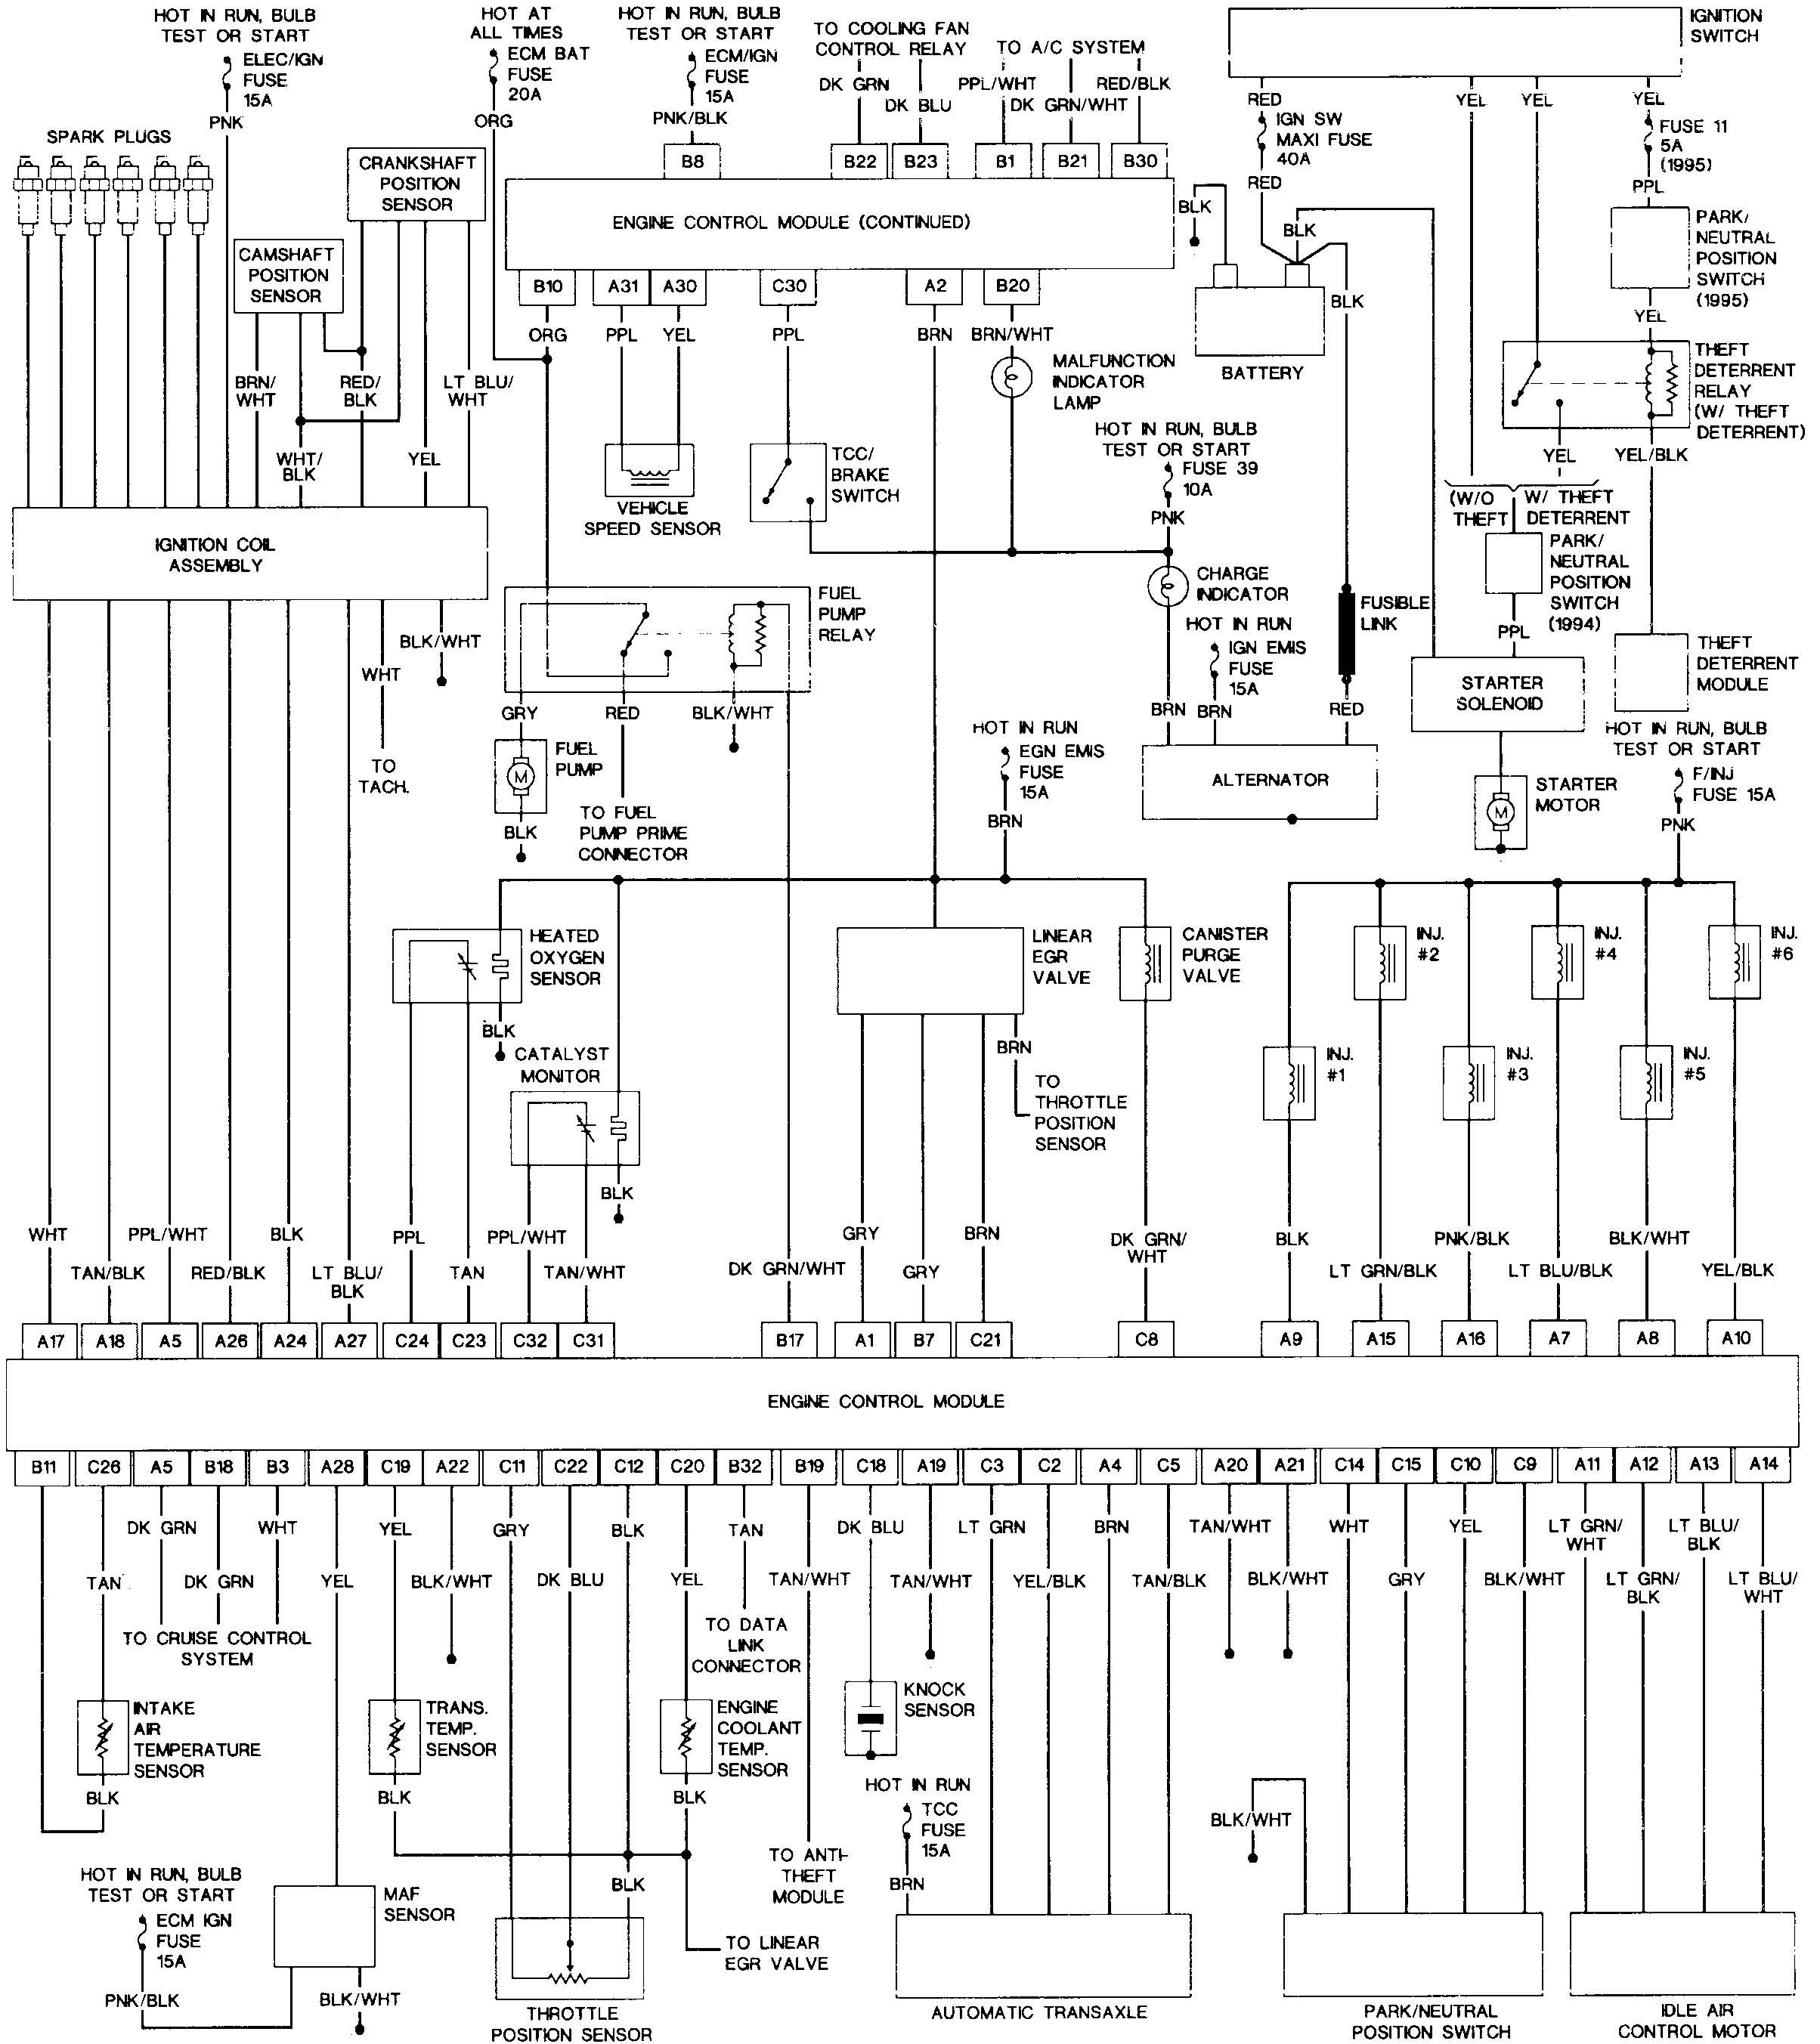 Diagram Of Chevy Cavalier 3 1 Engine Enthusiast Wiring Diagrams \u2022 2002  Pontiac Sunfire Radiator Hose Diagram 1998 Chevy Cavalier Engine Diagram